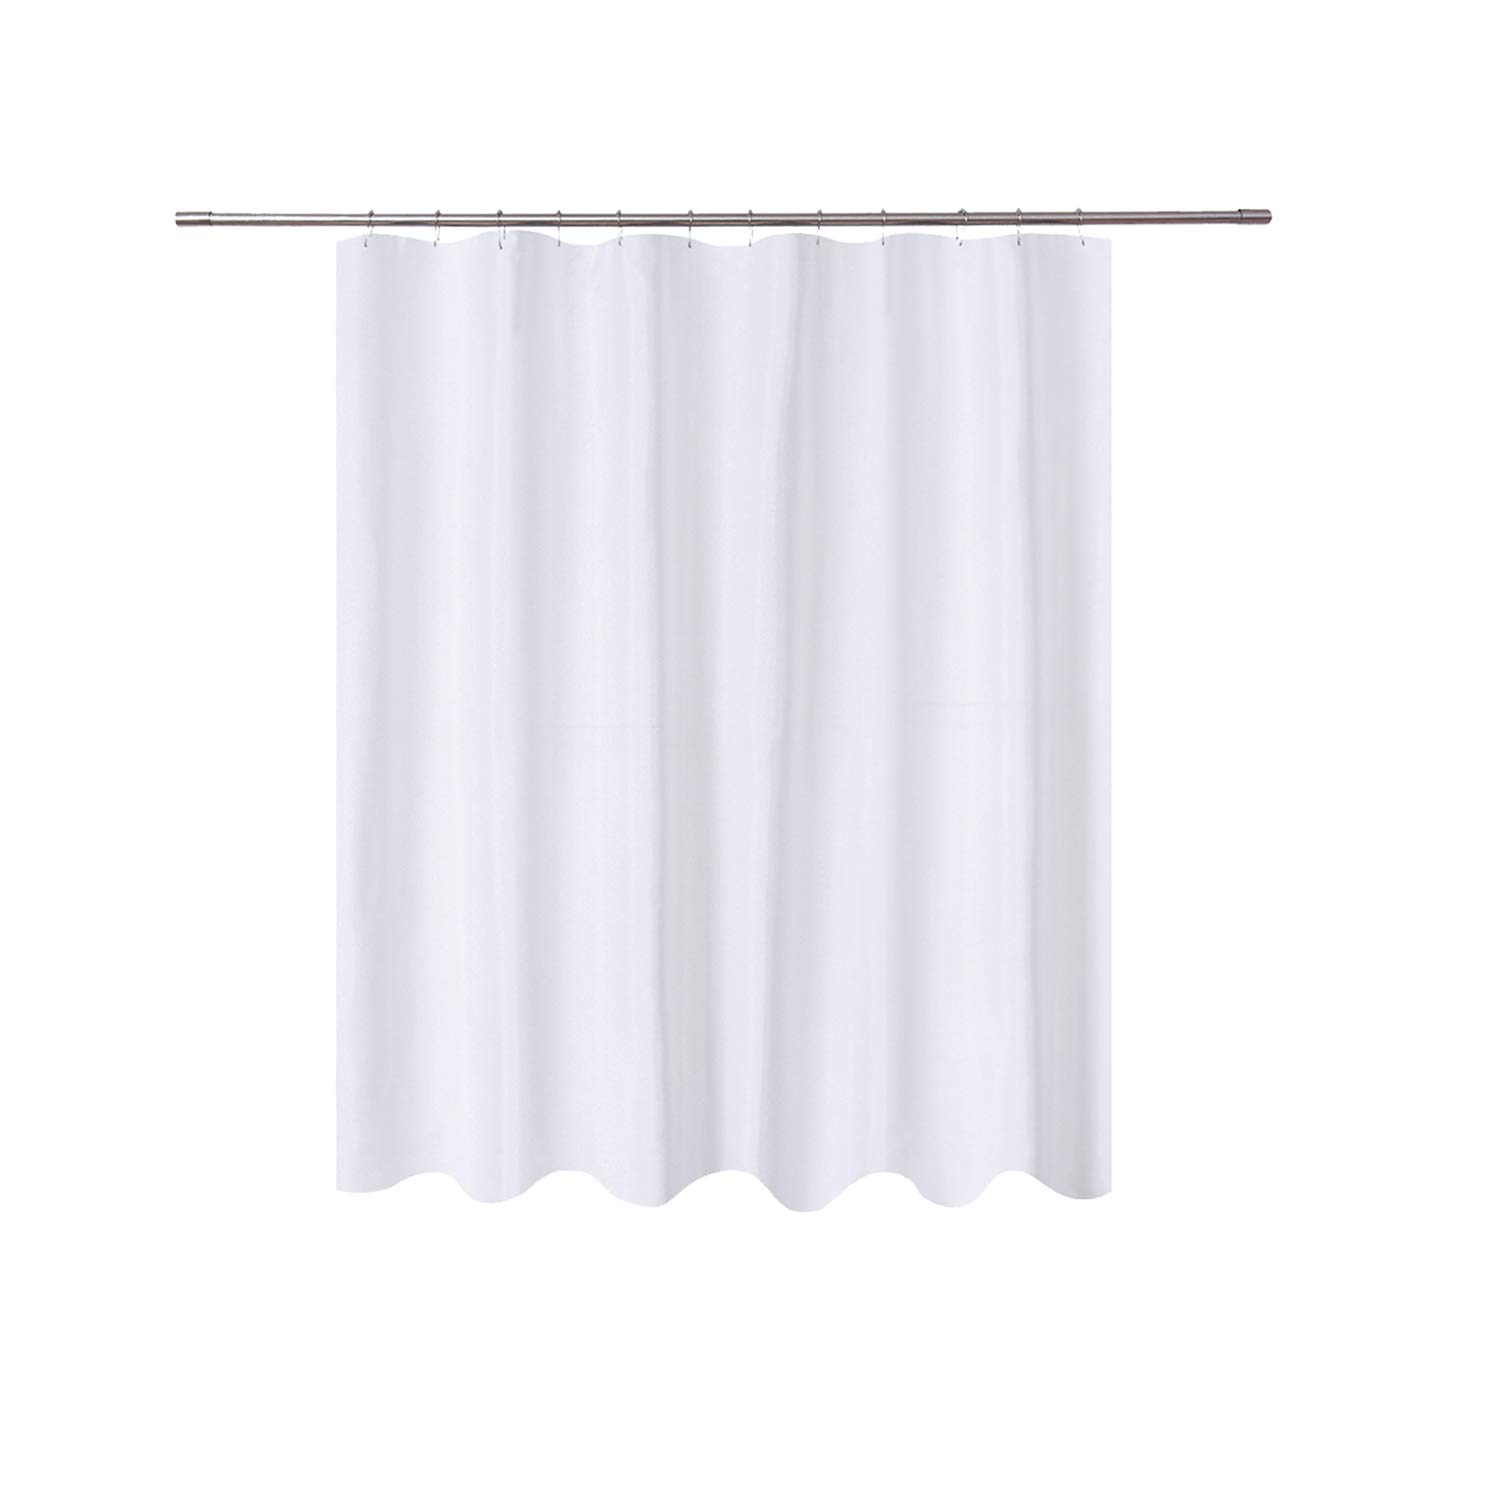 N&Y HOME Short Fabric Shower Curtain Liner 72 x 65 Shorter Length, Hotel Quality, Washable, Water Repellent, White Bathroom Curtains with Grommets, 72x65